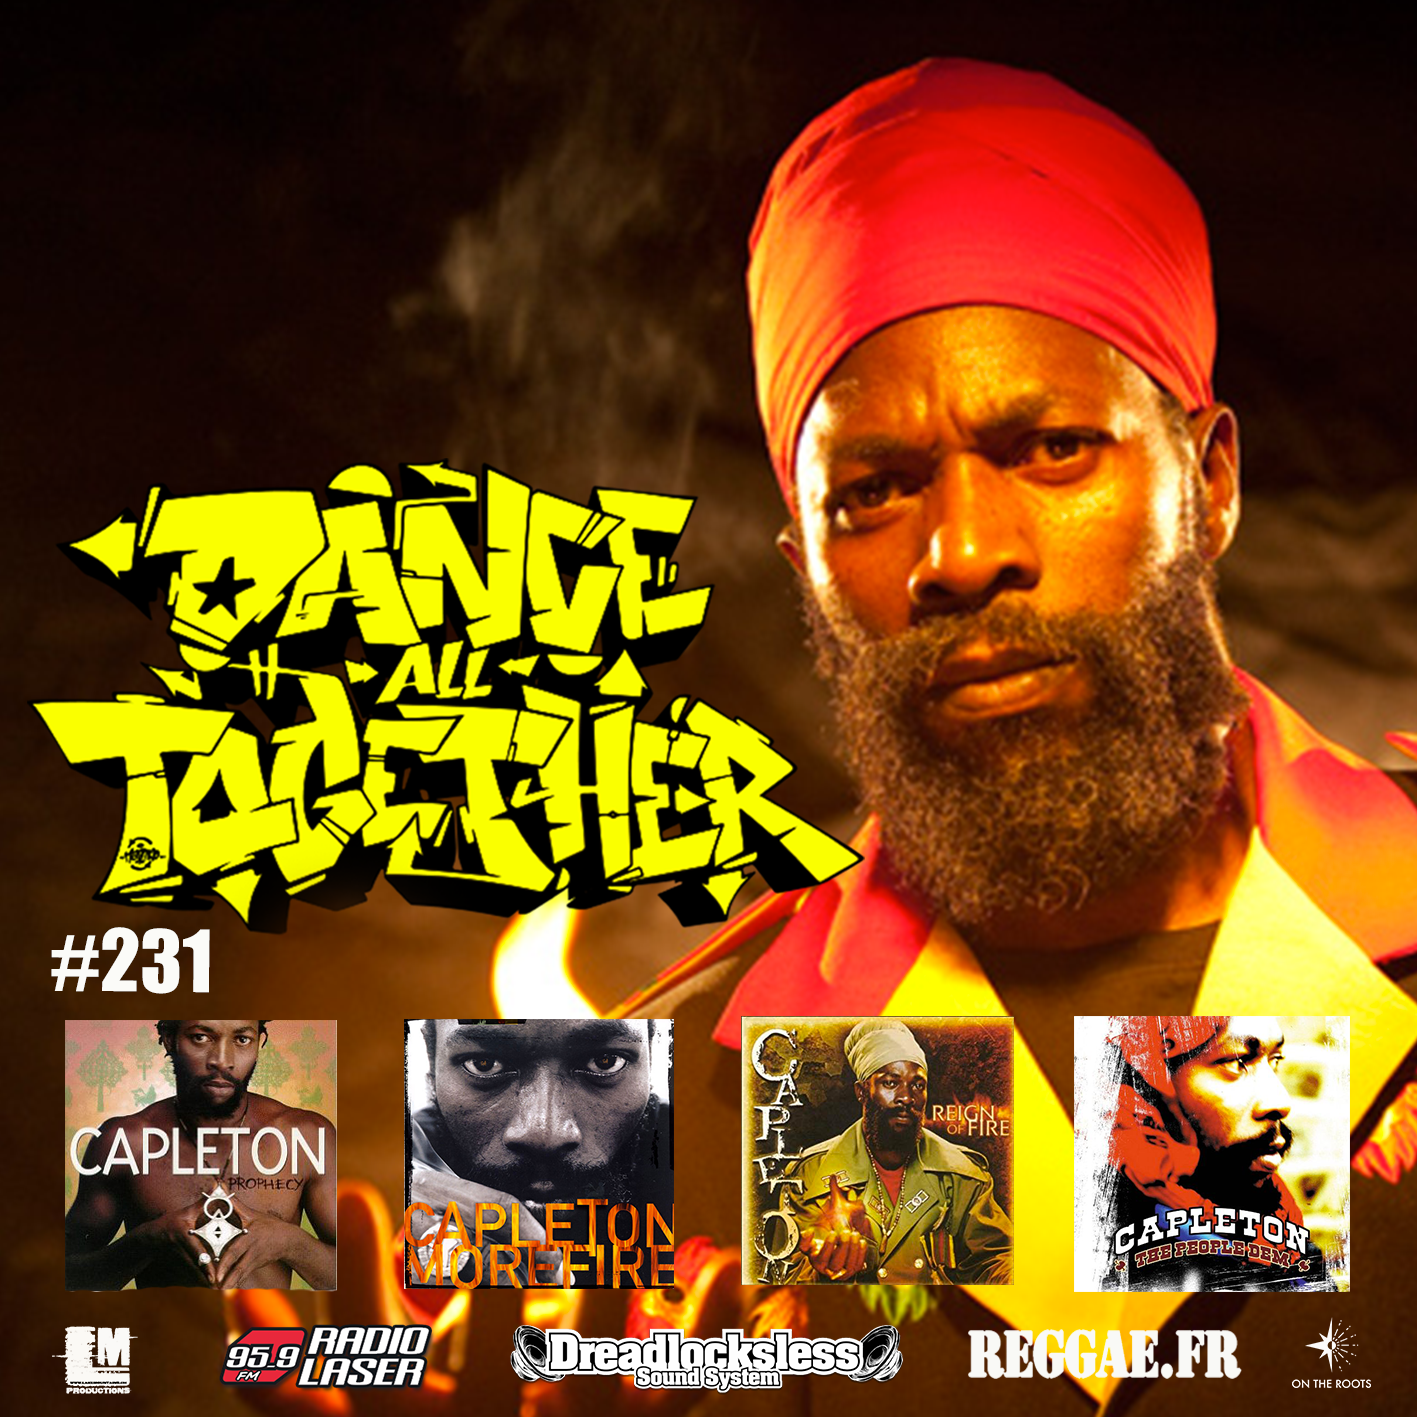 Dance All Together #231 Special Capleton Selection